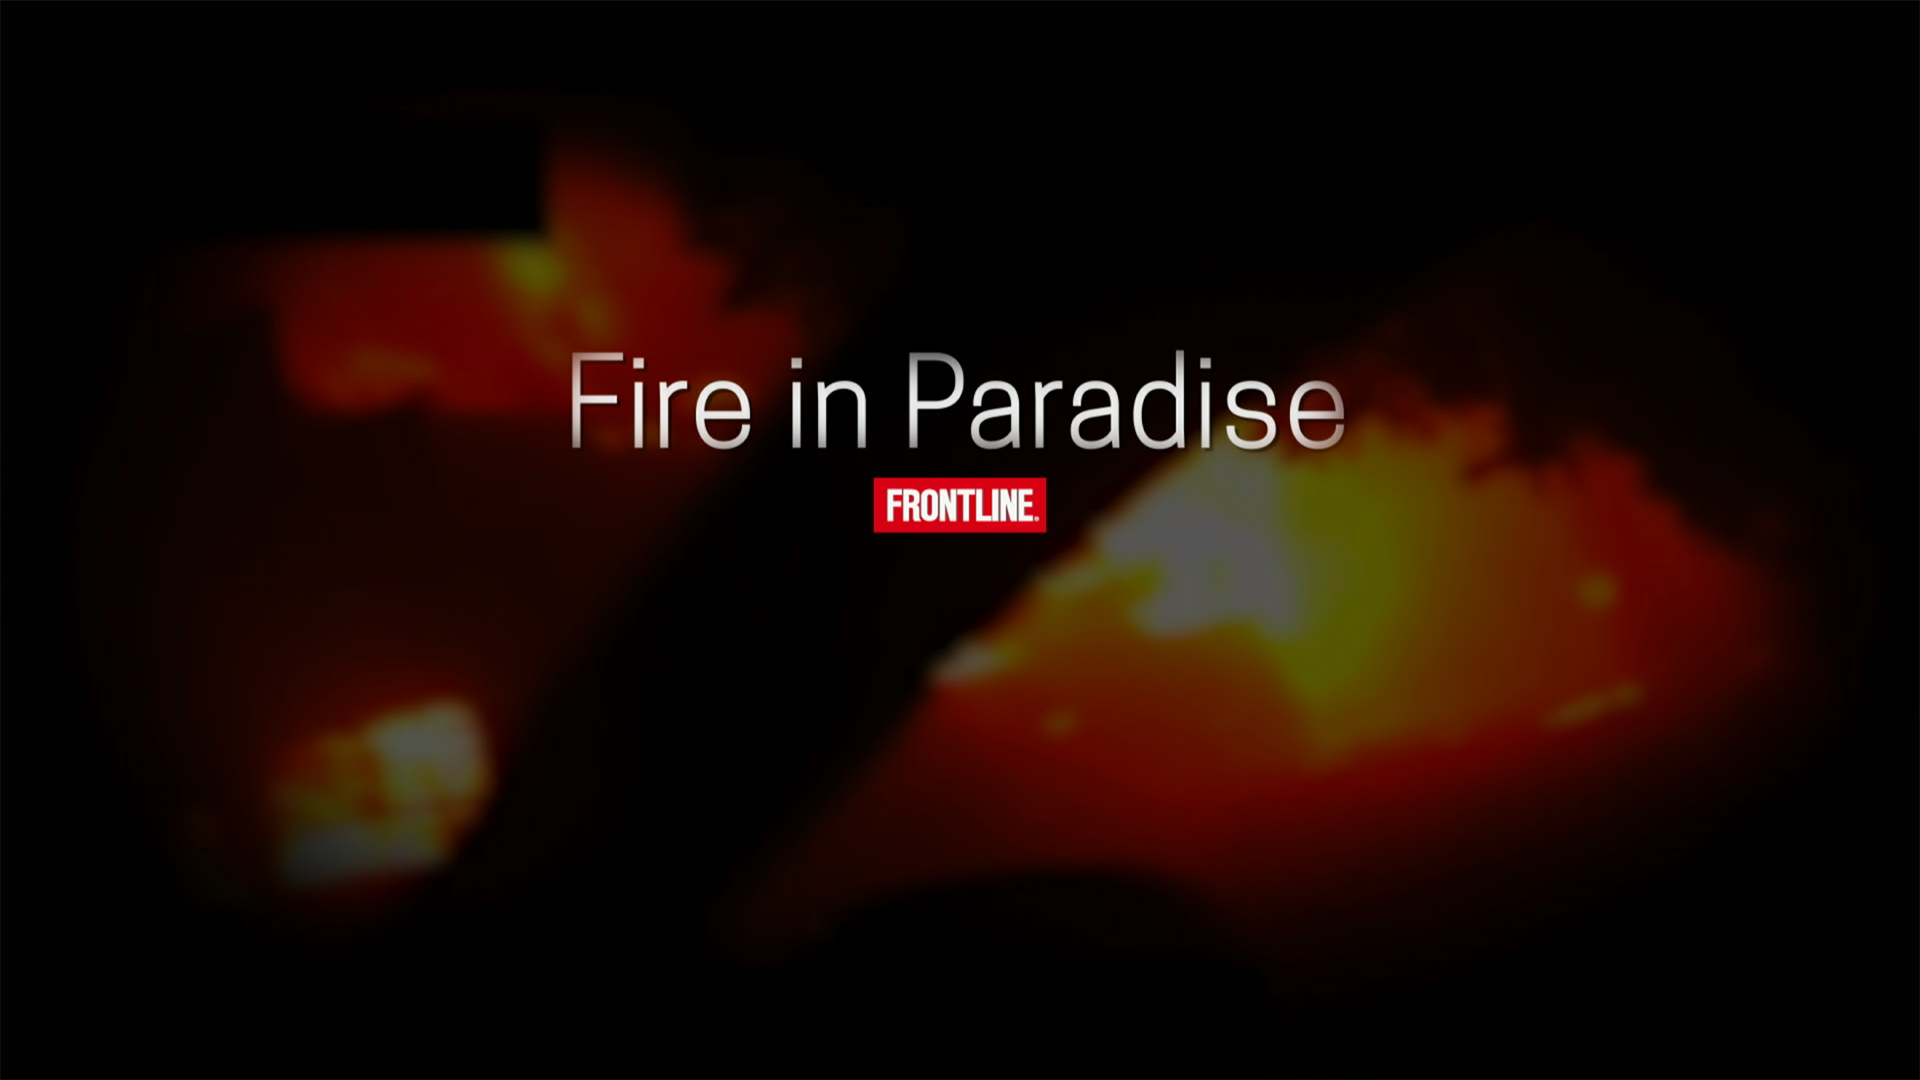 frontline fire in paradise